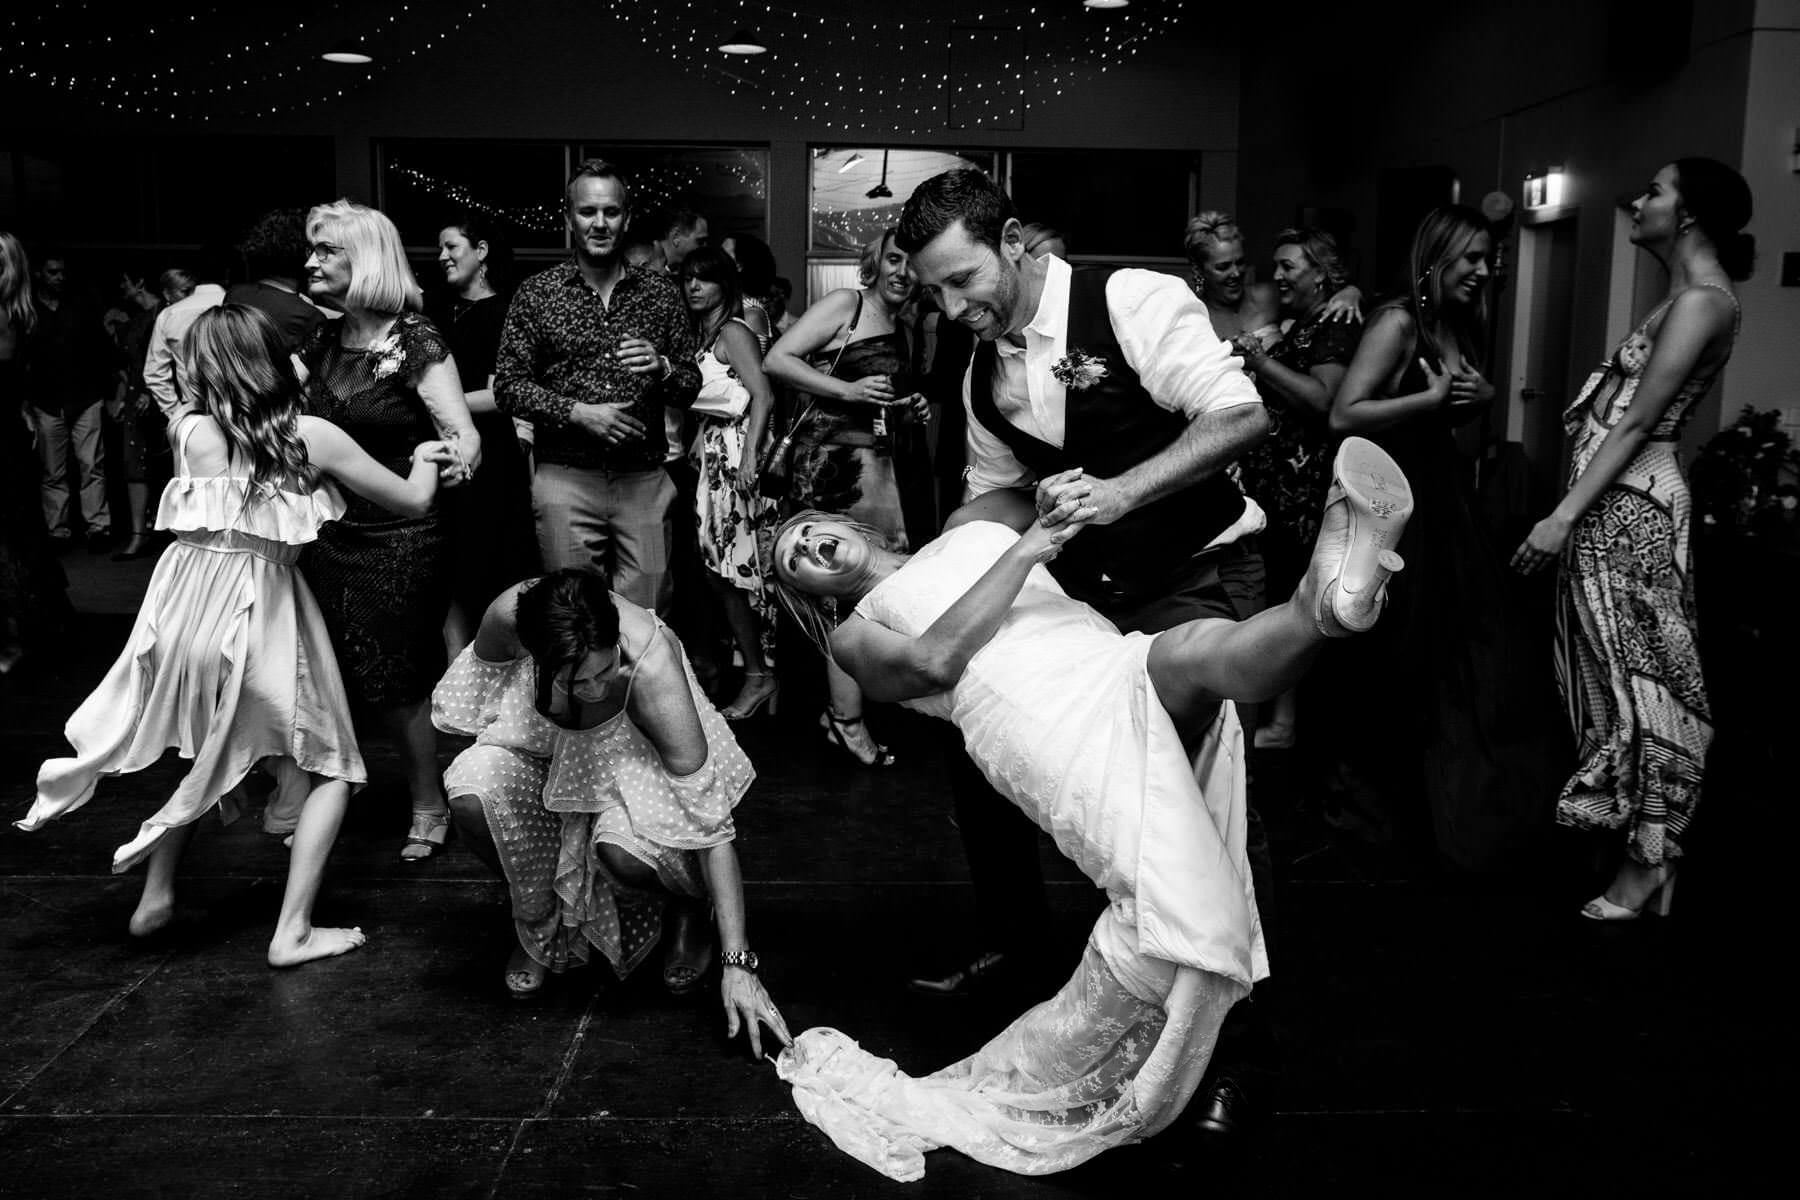 Sam Wyper Photography     Sam is a wedding photographer working in Byron Bay, Brisbane and Sydney. He loves beautiful light, stunning backgrounds, epic dance floor moves and making couples cry when they see their wedding photography slideshow.